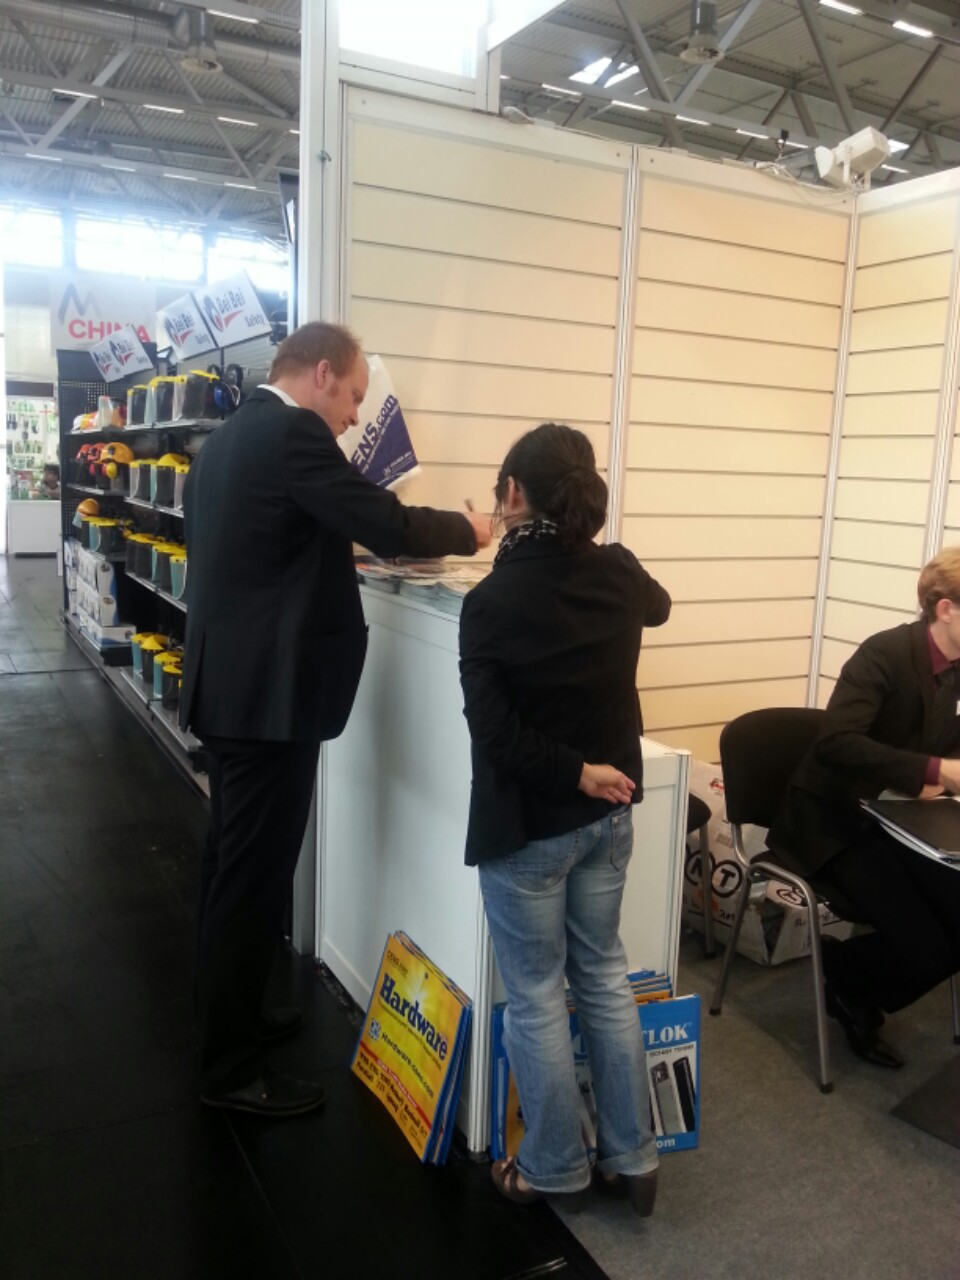 A local buyer inquiring about products at CENS booth at Spoga + Gafa 2013.